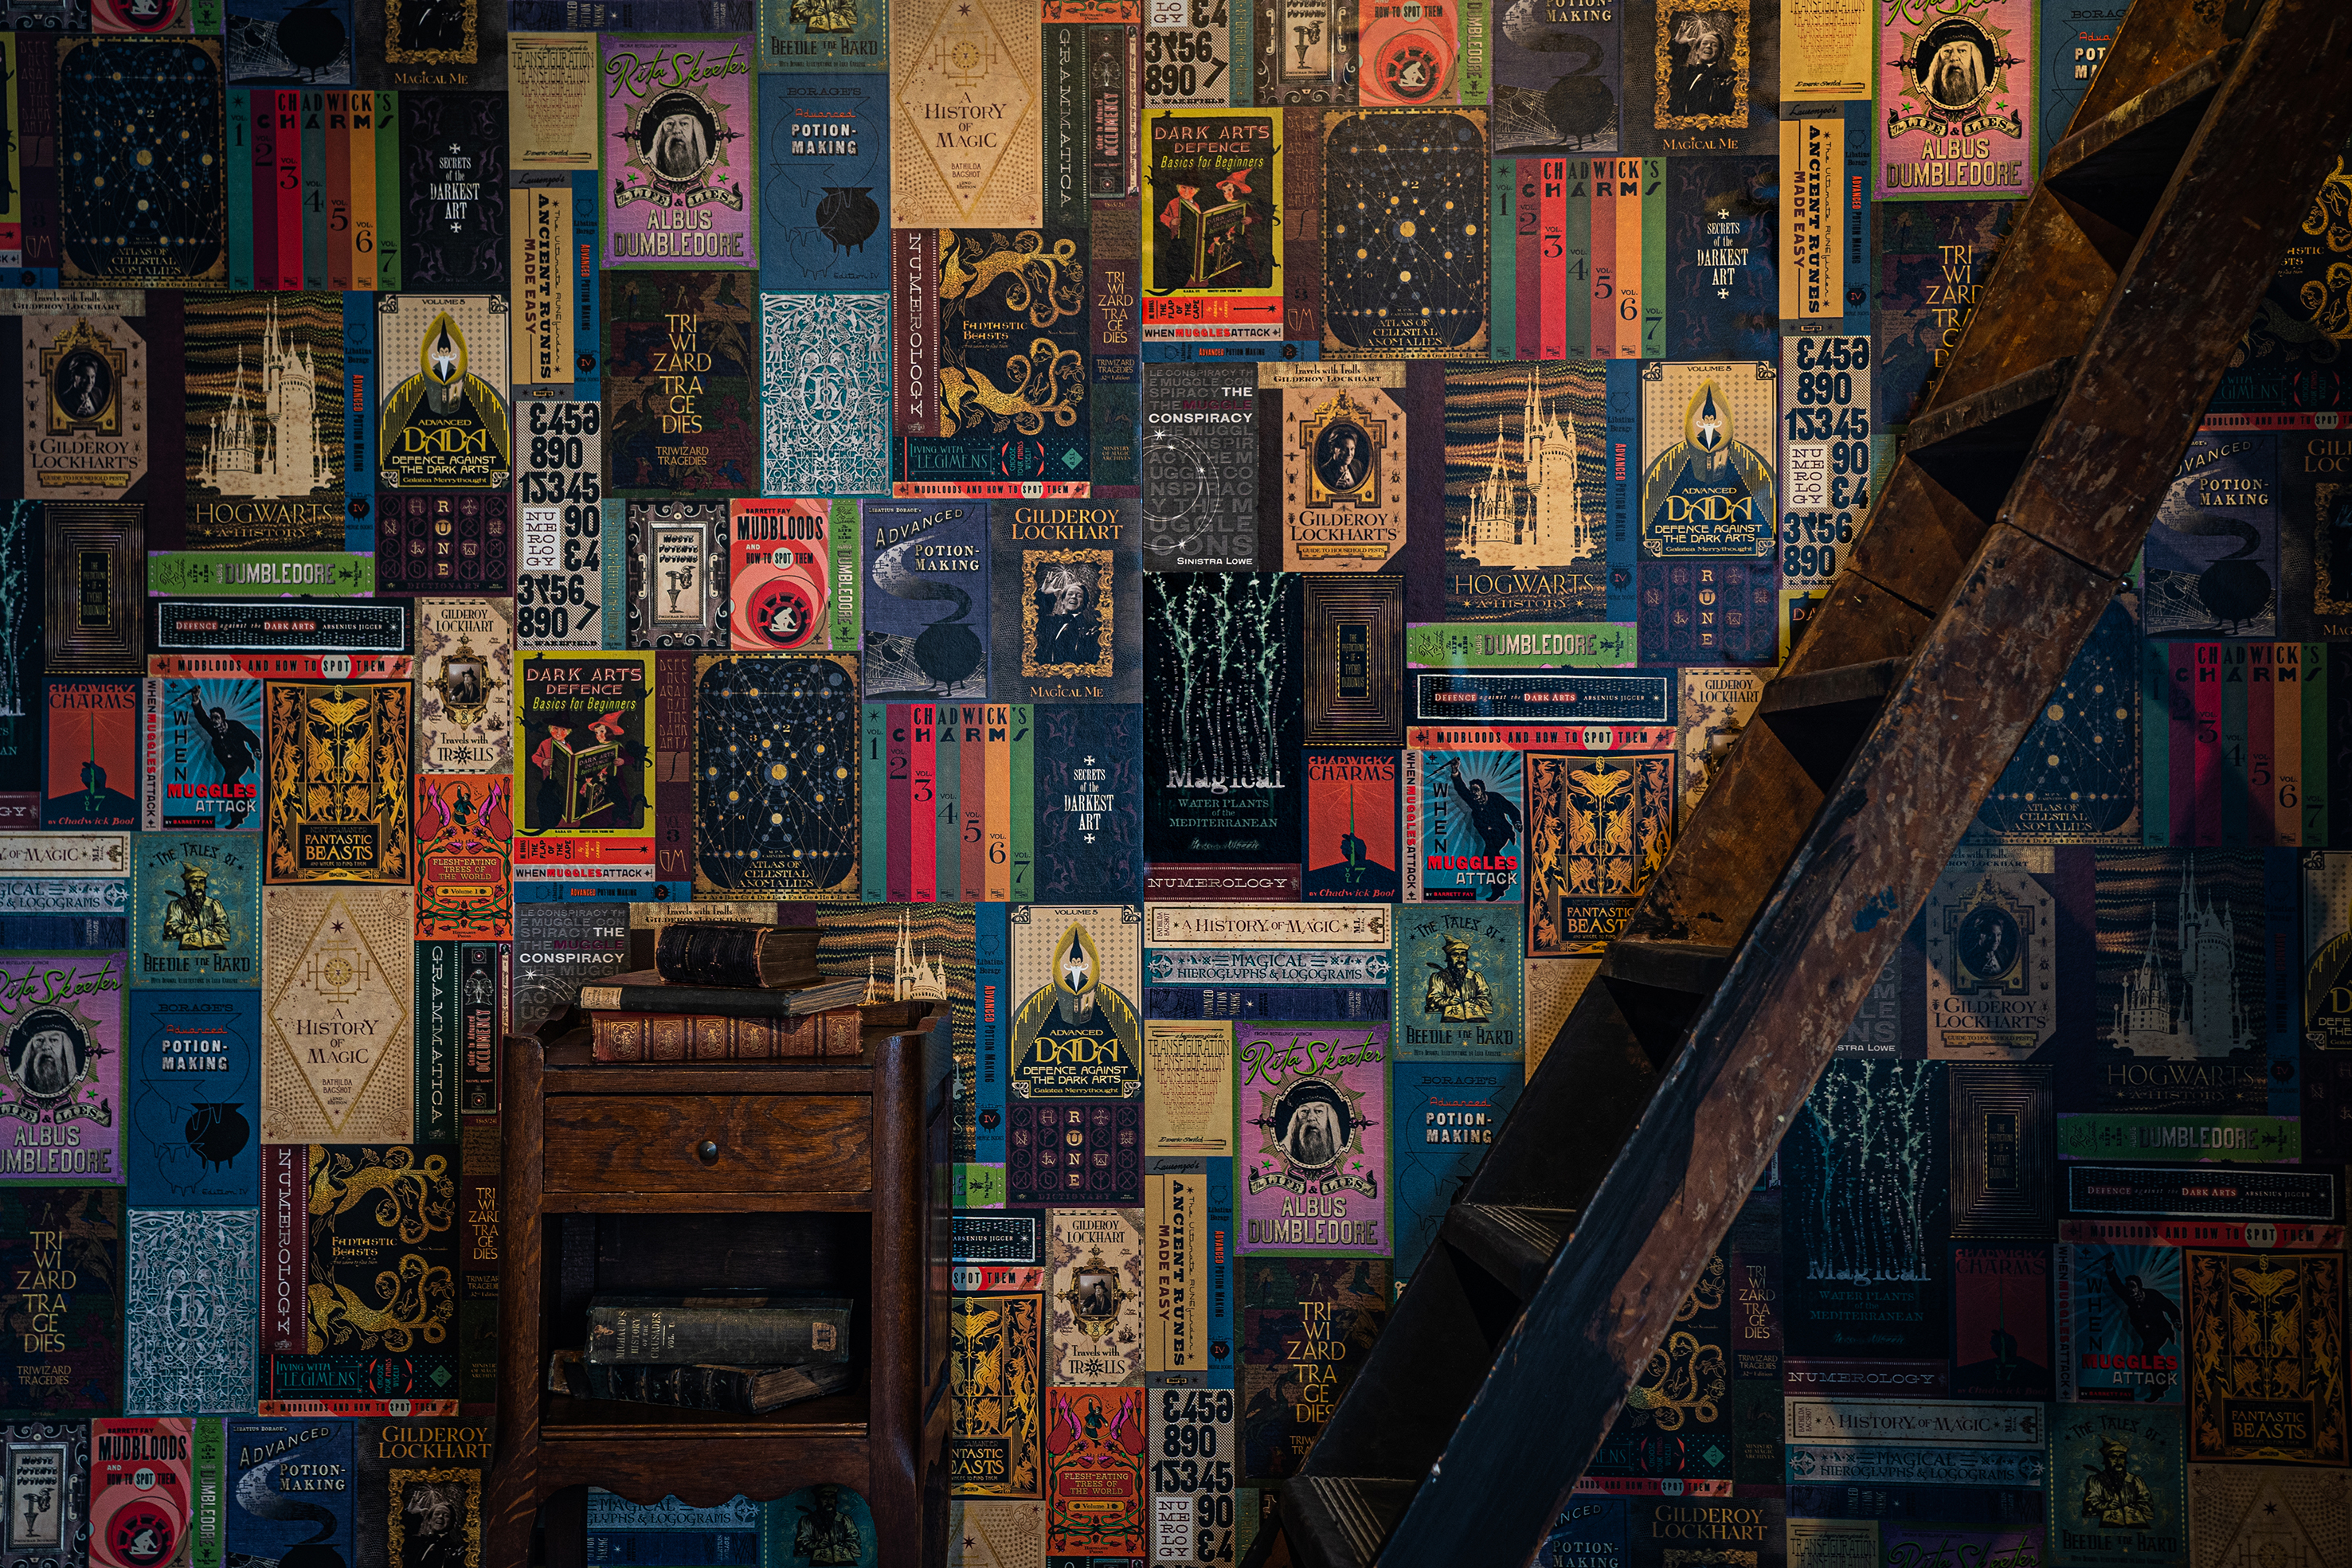 """The wizarding books wallpaper brings """"Harry Potter"""" textbooks and novels to life with vibrant colors."""